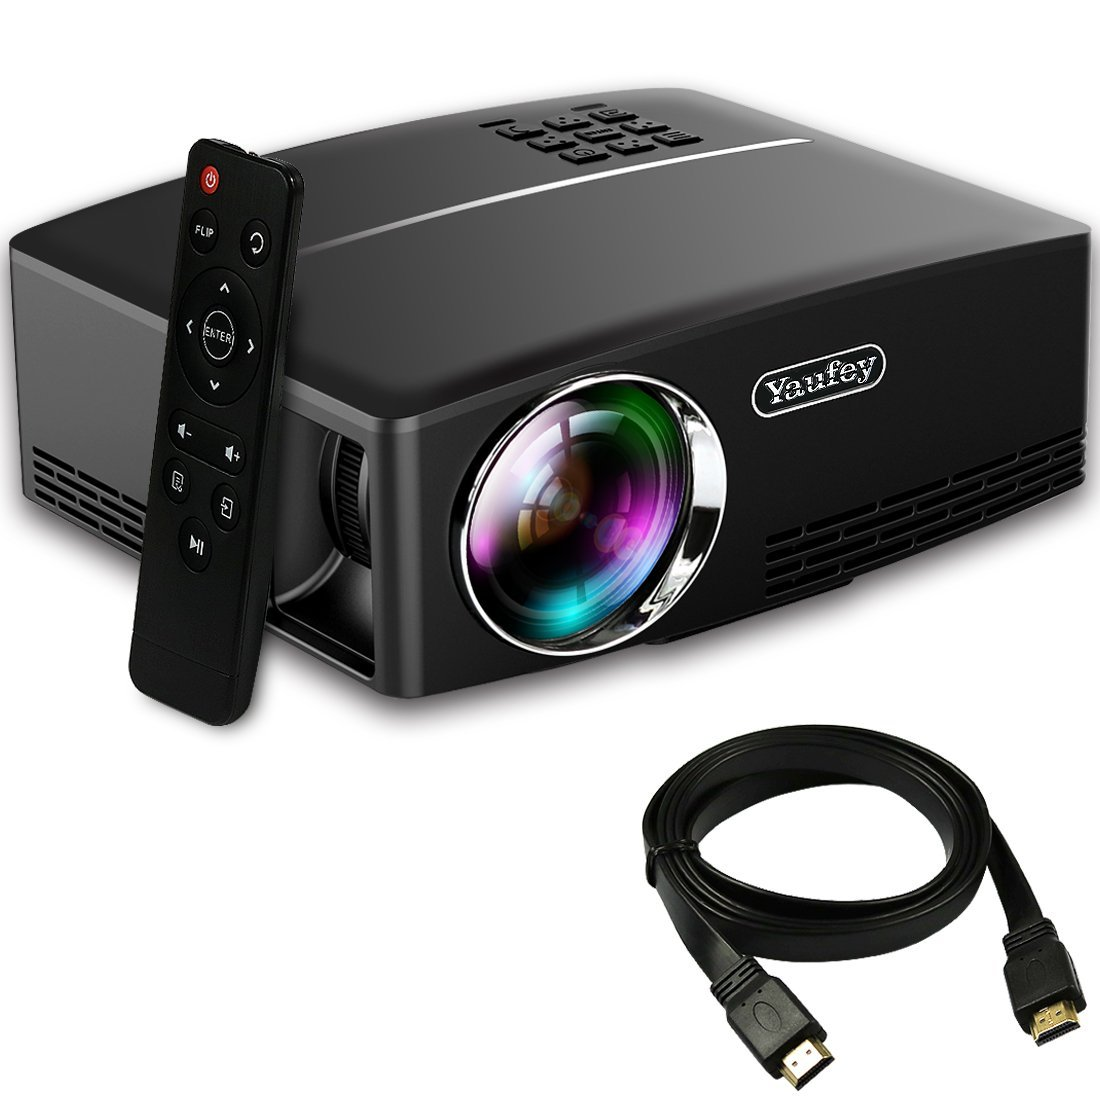 Full HD Wireless projector